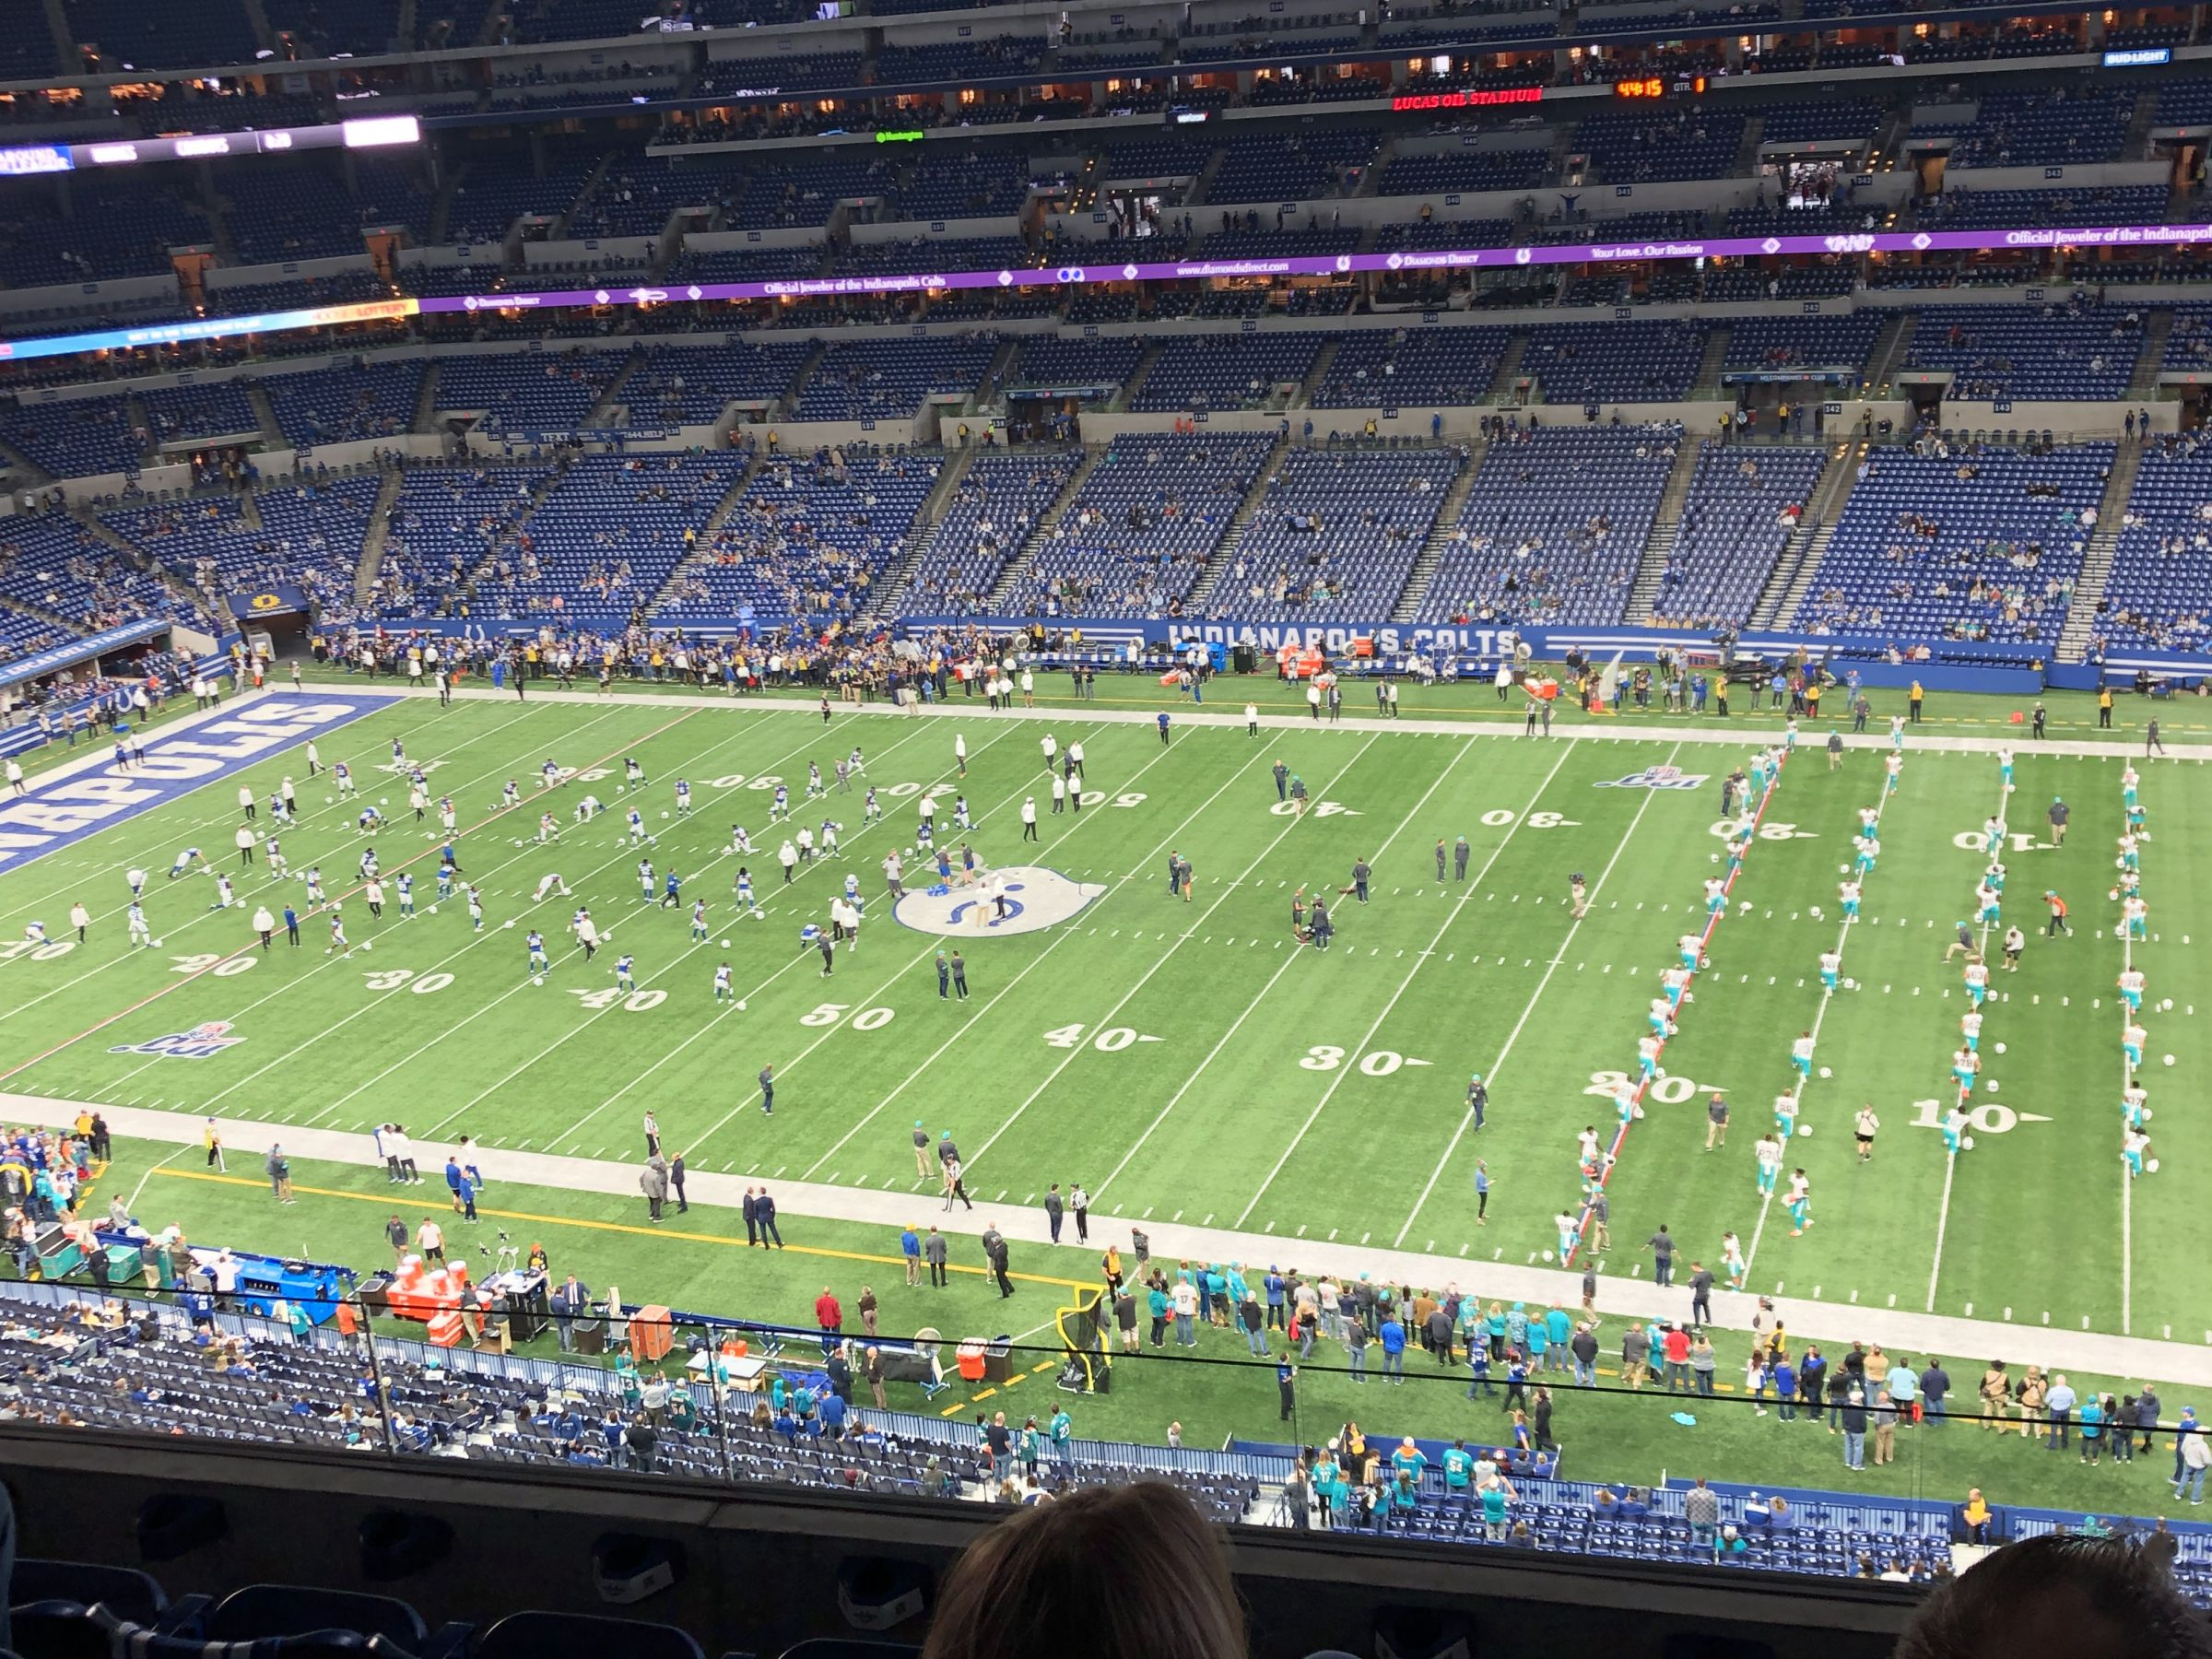 Indianapolis Colts Seat View for Lucas Oil Stadium Section 510, Row 5